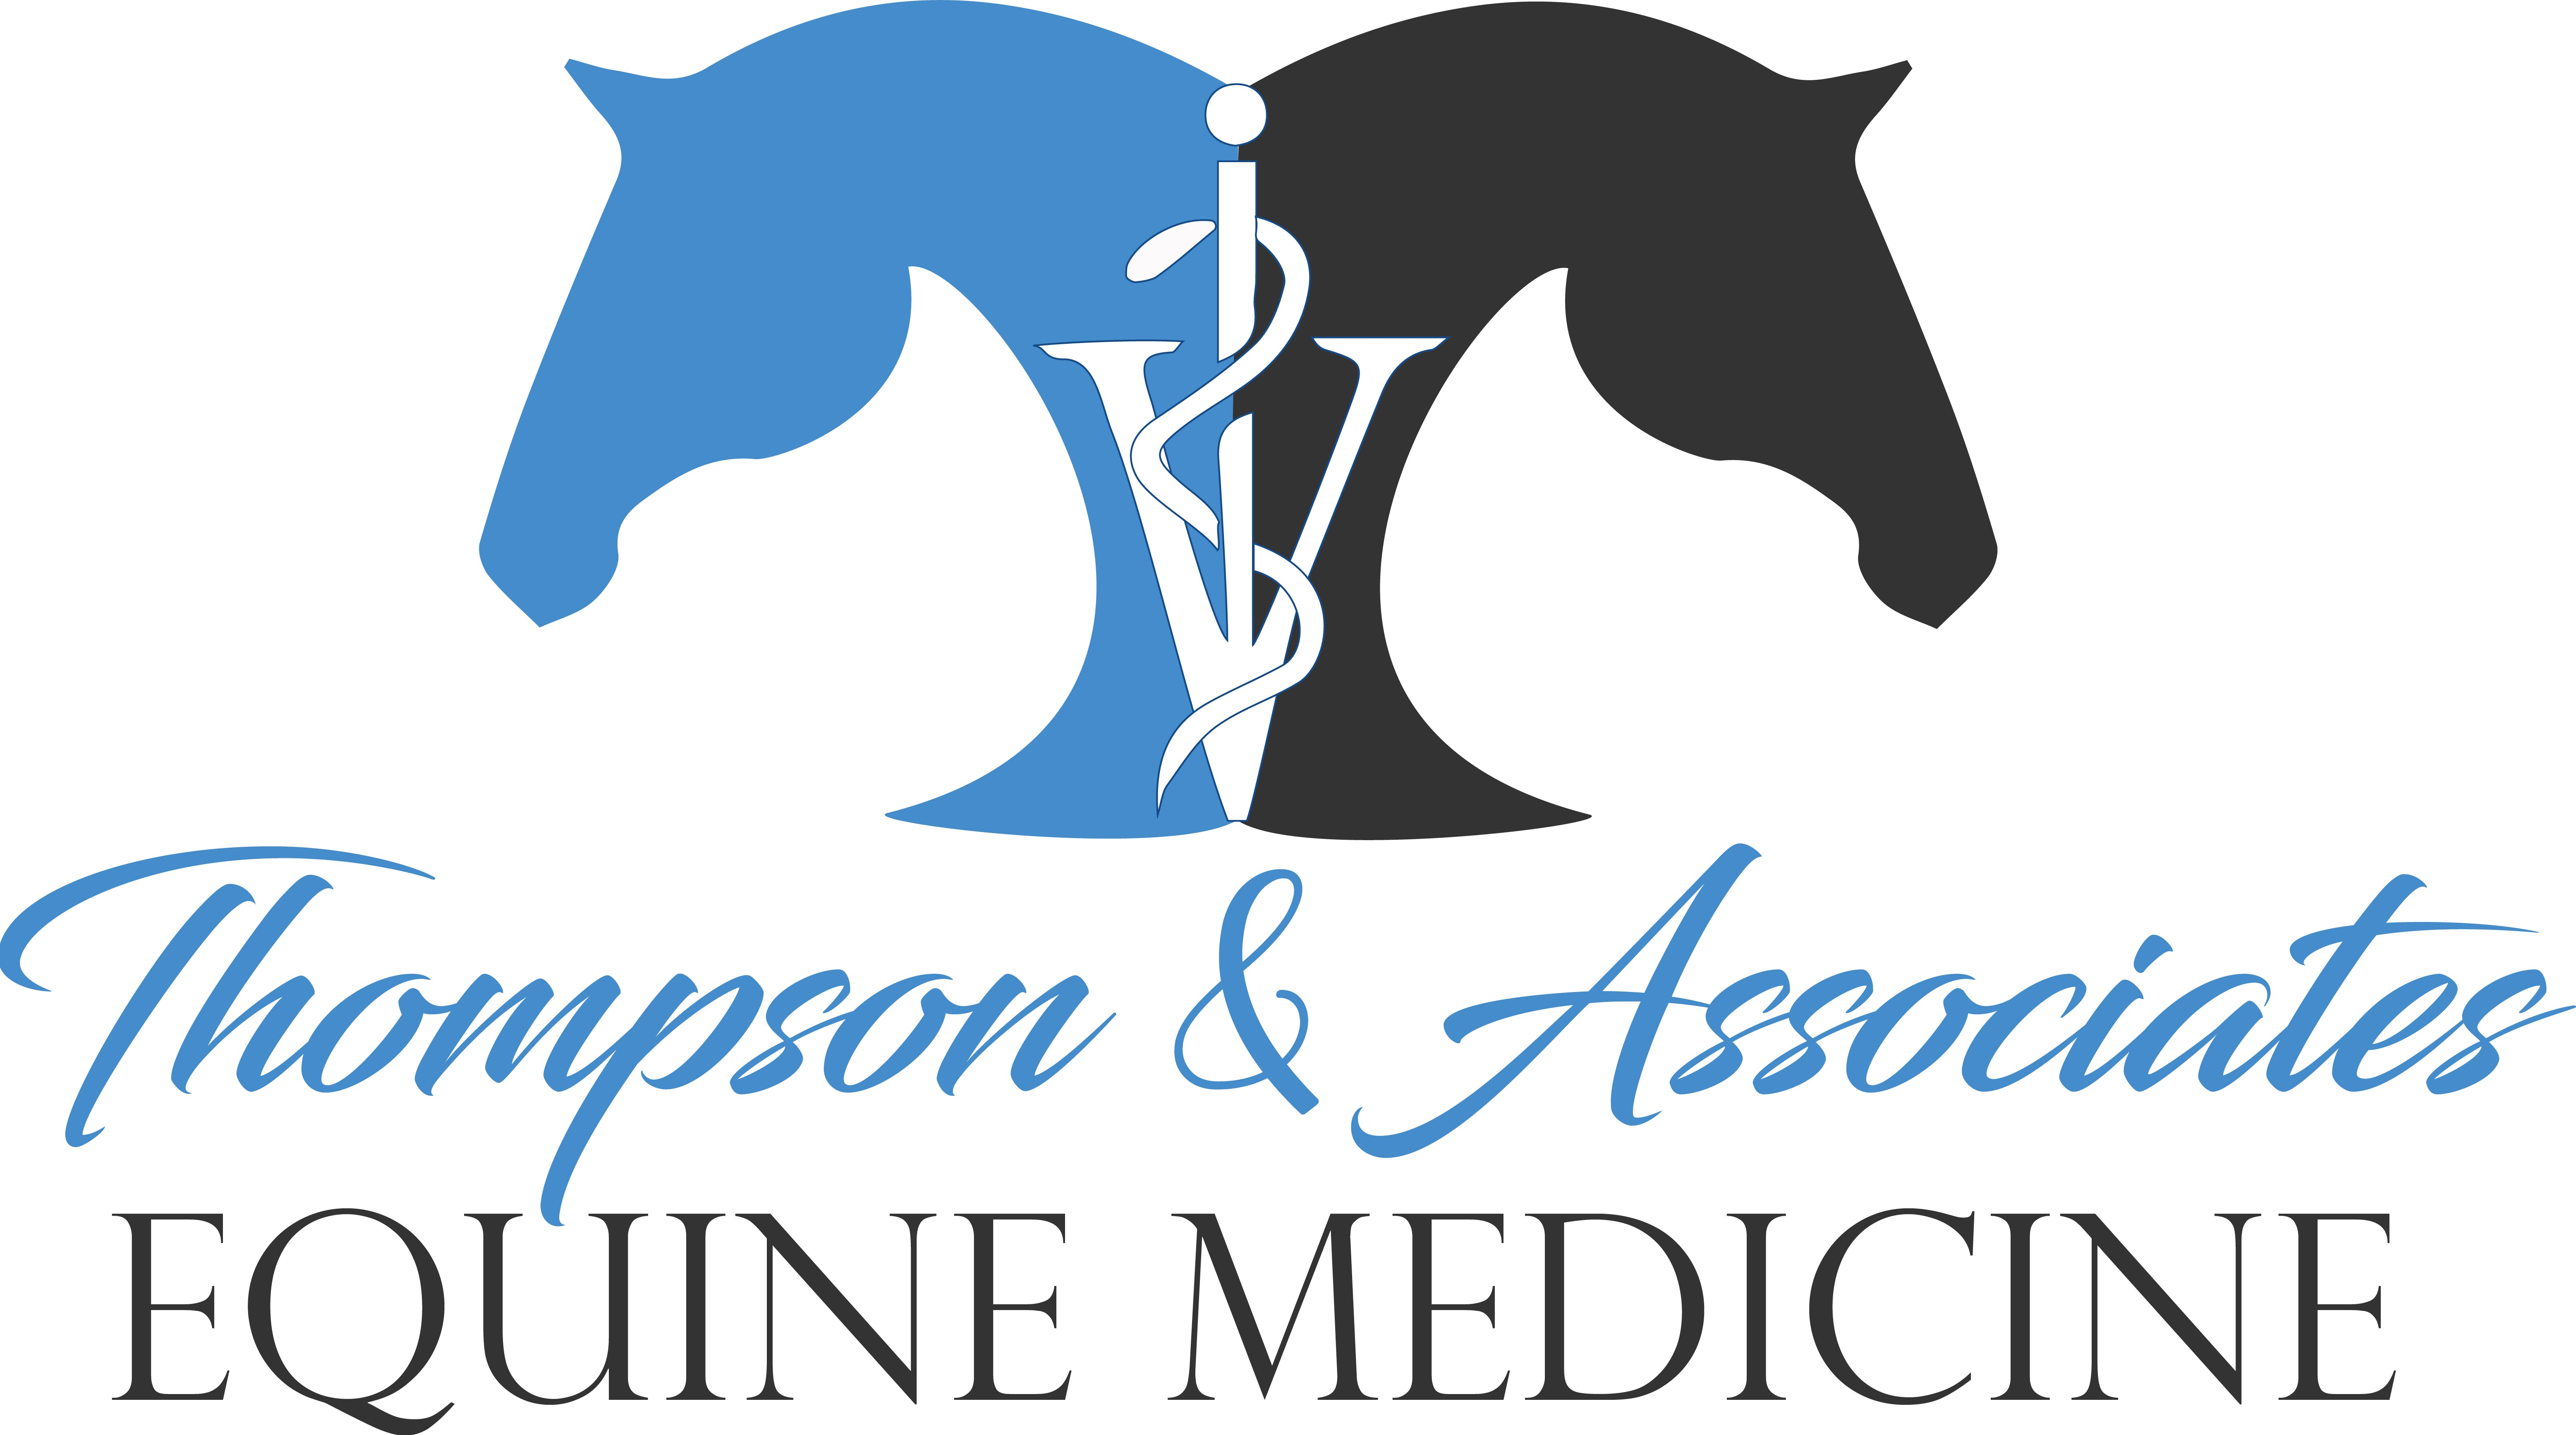 Thompson & Associates Equine Medicin